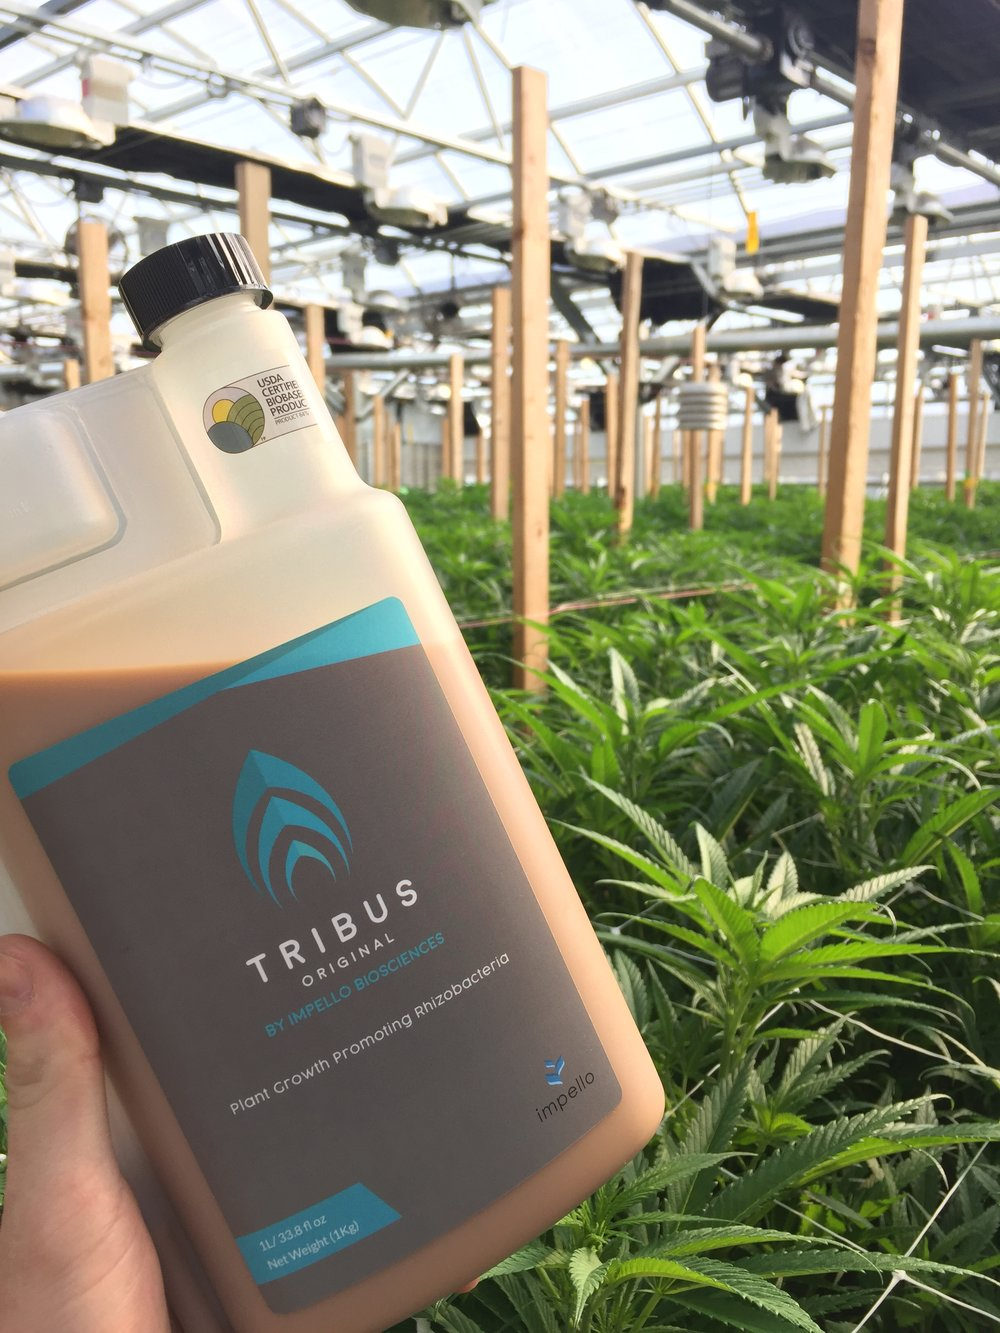 to controlled environment agriculture - Tribus is a perfect addition to any growers arsenal.